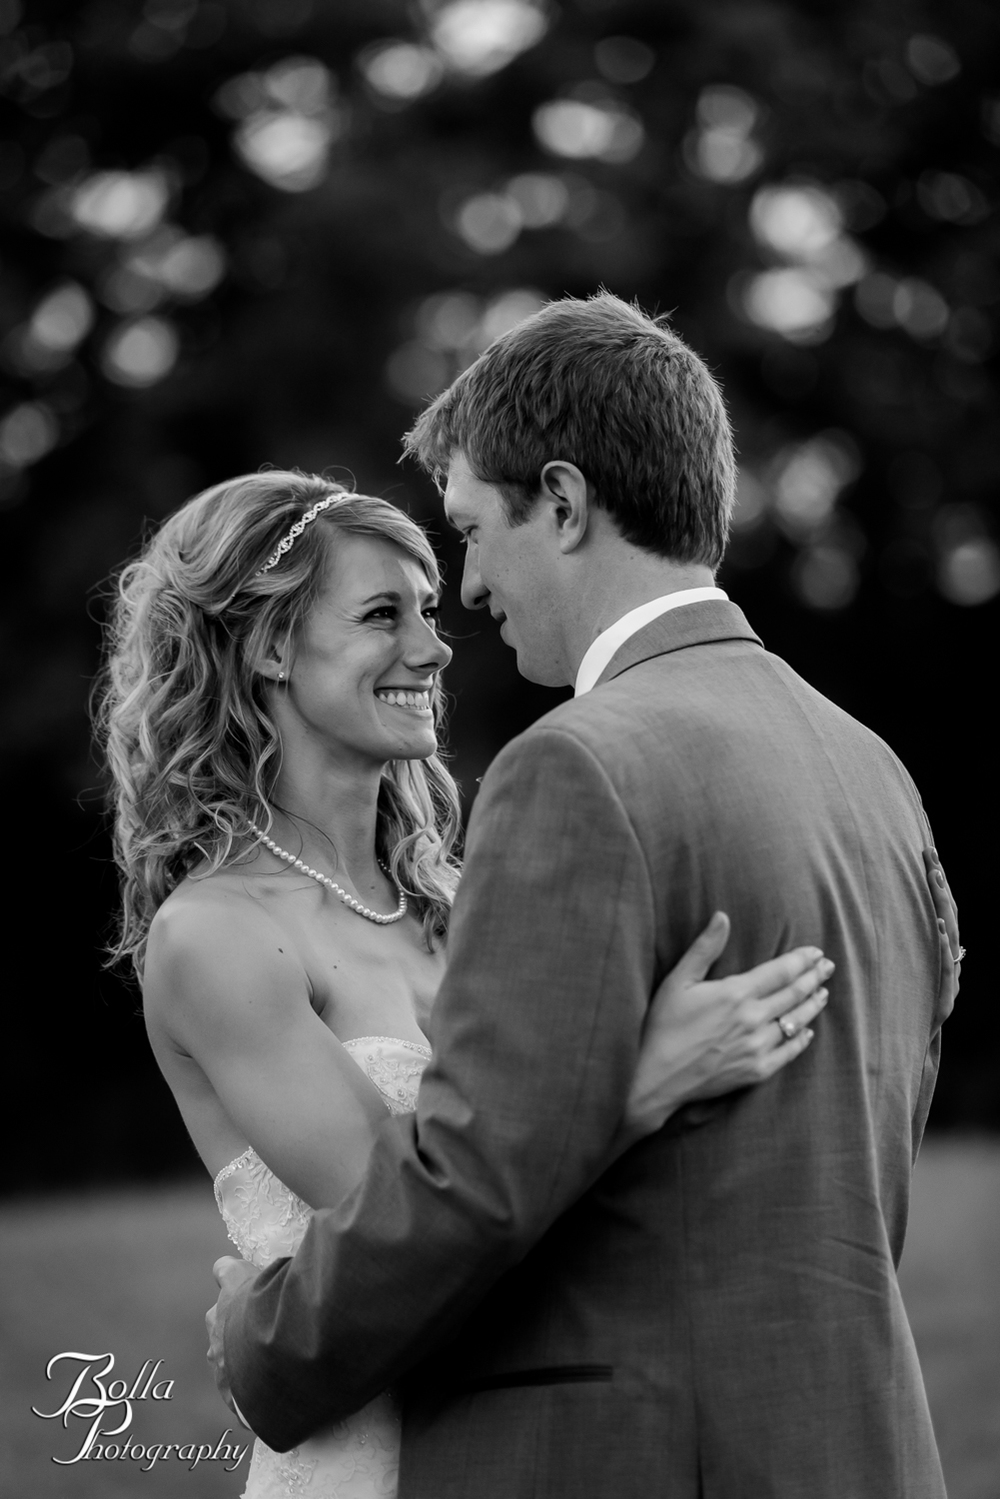 Bolla_Photography_St_Louis_wedding_photographer-0334.jpg